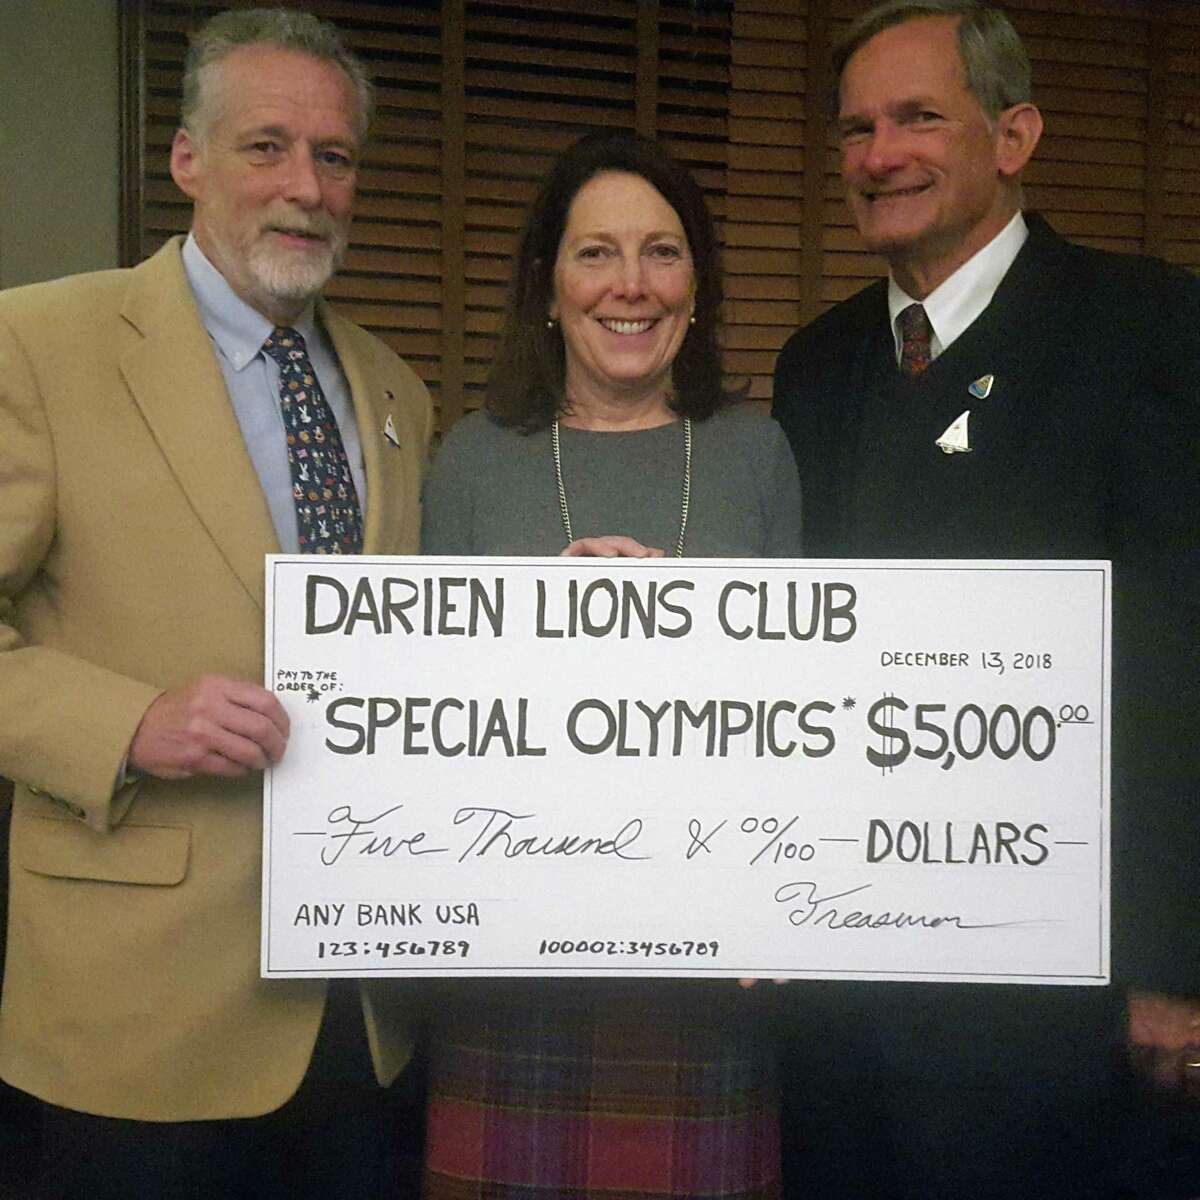 The LIONS Club of Darien held their annual holiday meeting on Dec. 13 at the Country Club of Darien. The LIONS presented the Darien Special Olympics team with a check for $5,000 in support of their sports competitions locally and statewide. From left, Peter Rogers, president of the LIONS Club of Darien; Kera Connolly, coordinator for Darien Special Olympics; and Allen O'Farrell, LIONS District 23A governor of Connecticut.